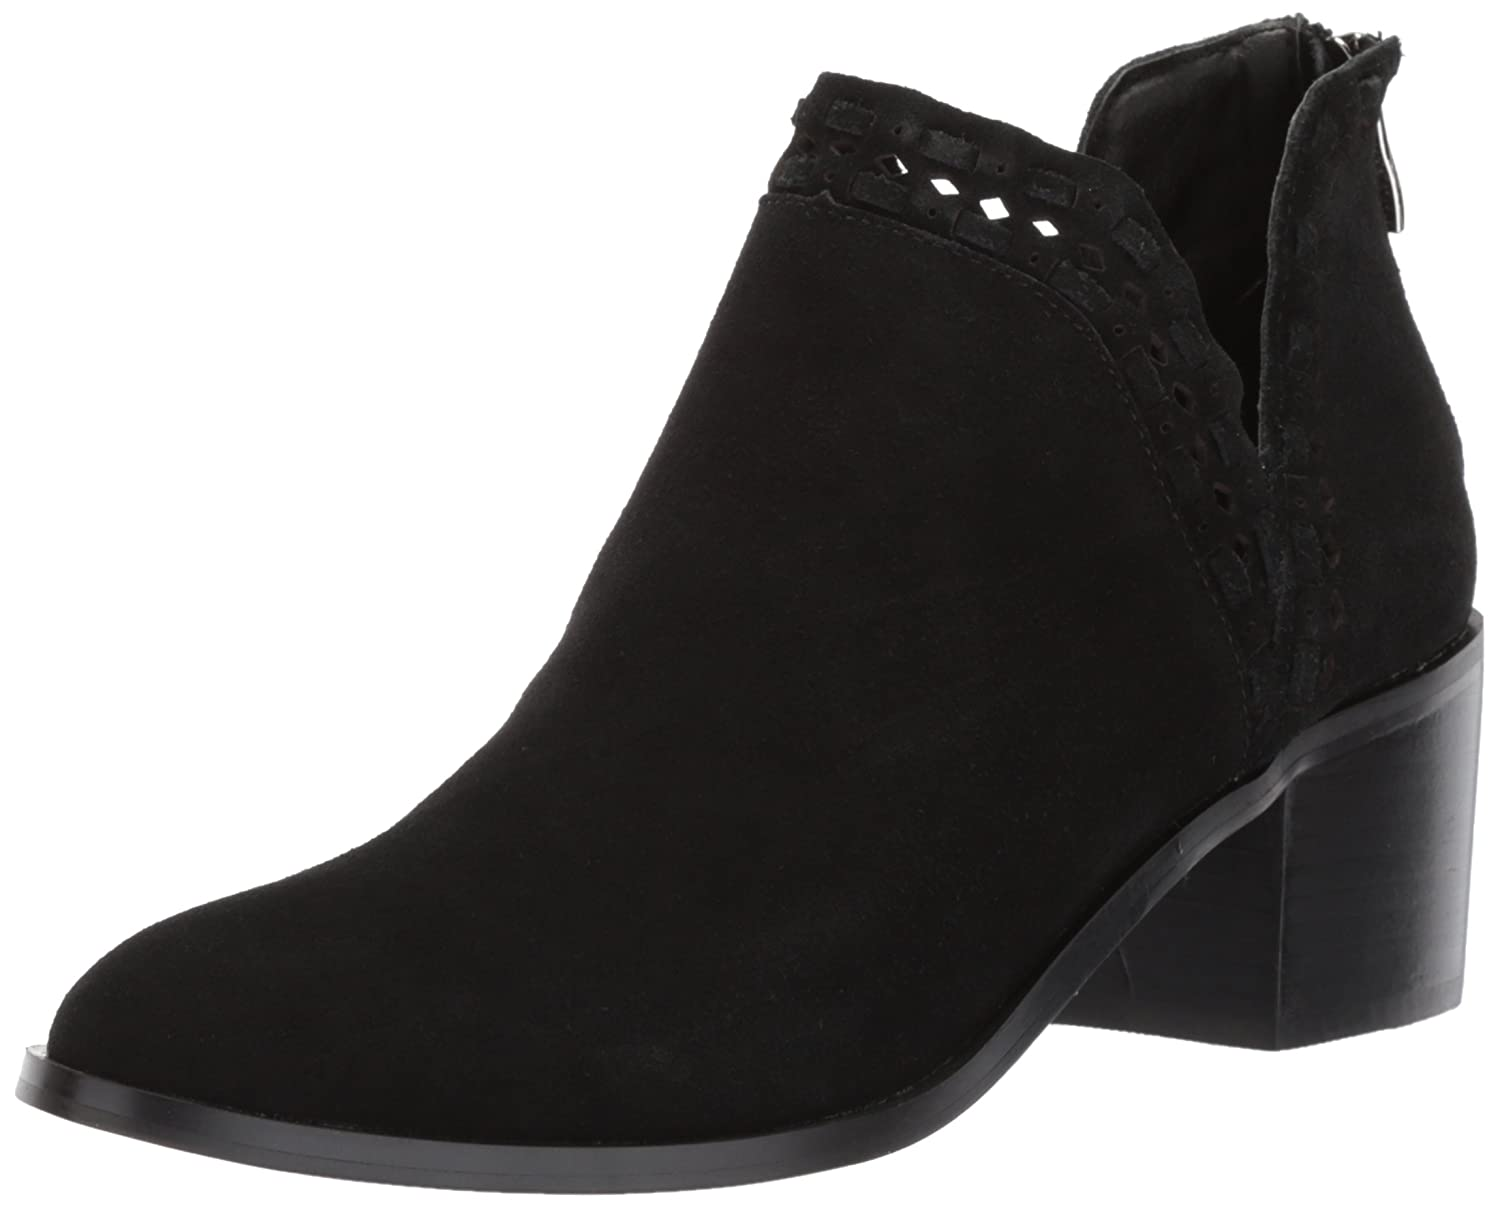 Steve Madden Women's Java Ankle Boot B075NG42L6 9.5 B(M) US|Black Suede